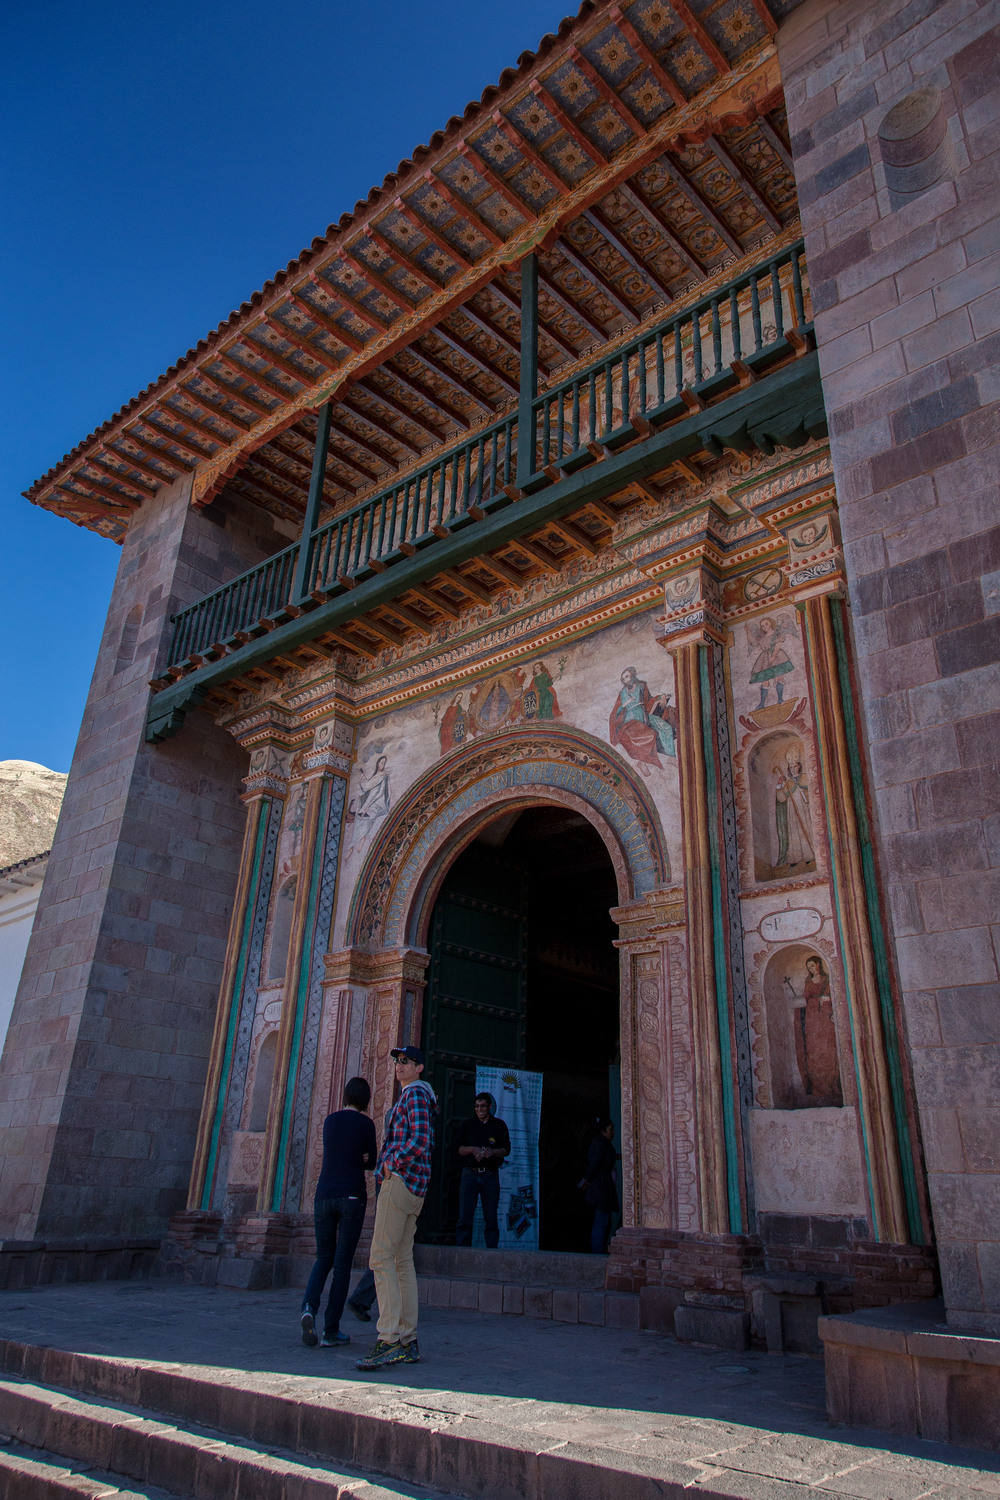 Ornate entrance to Iglesia de San Pedro, Andahuaylillas